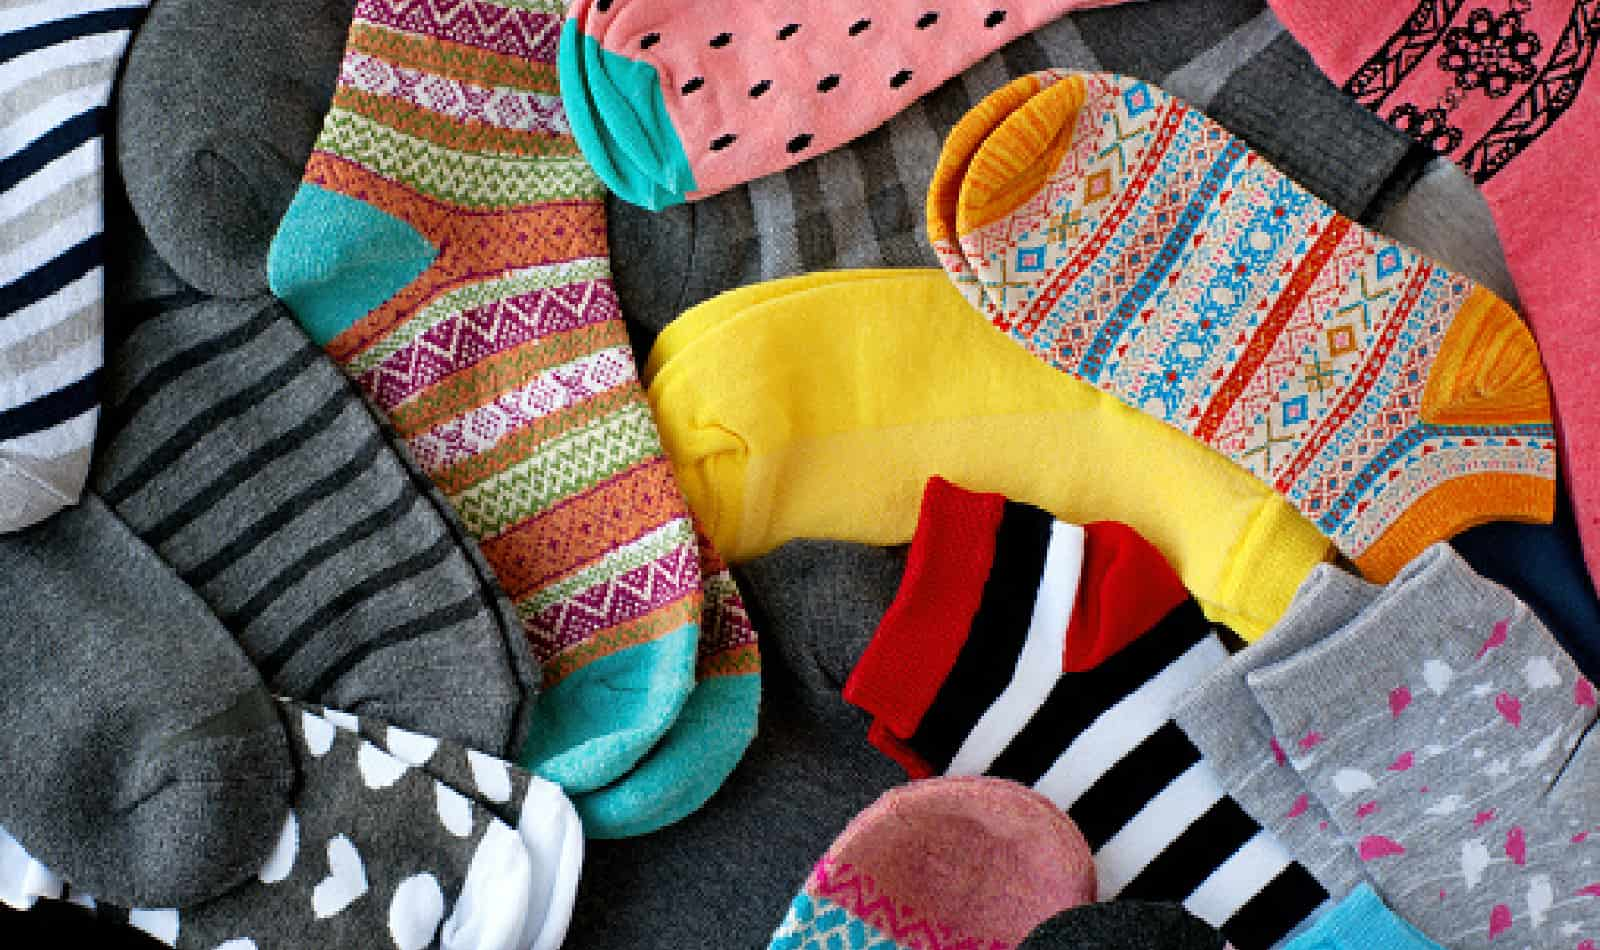 soctopus b Having Fun at Home: How to Make a Sock-To-Pus